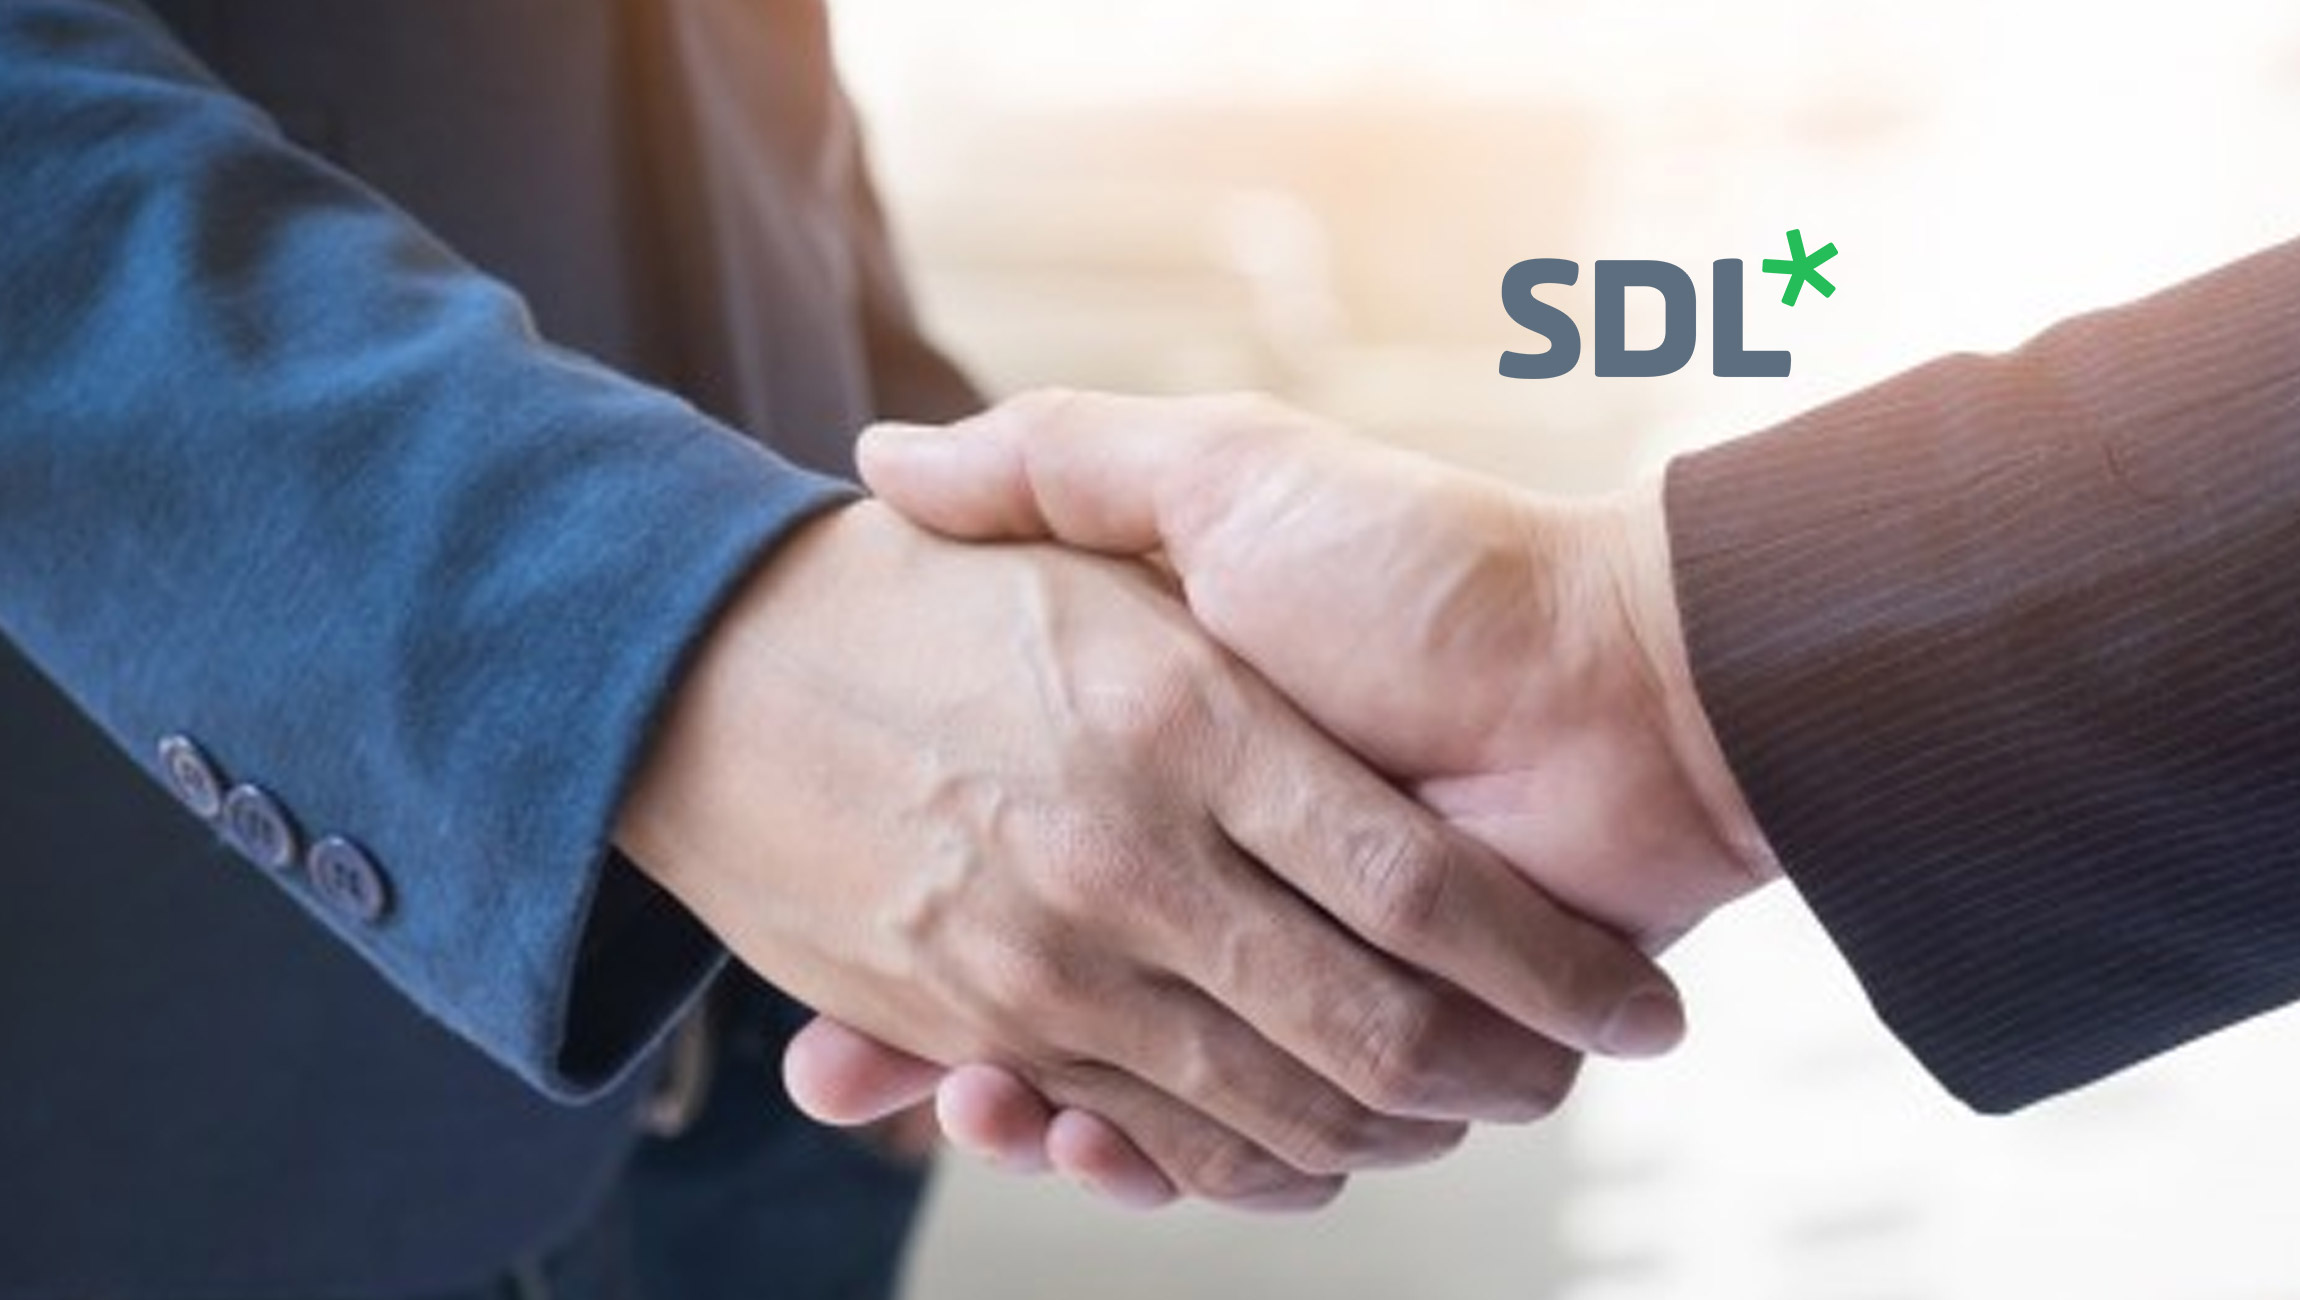 SDL and Bynder Partner to Help Enterprises Manage and Translate Digital Assets and Campaigns Enabling Content in 180+ Languages